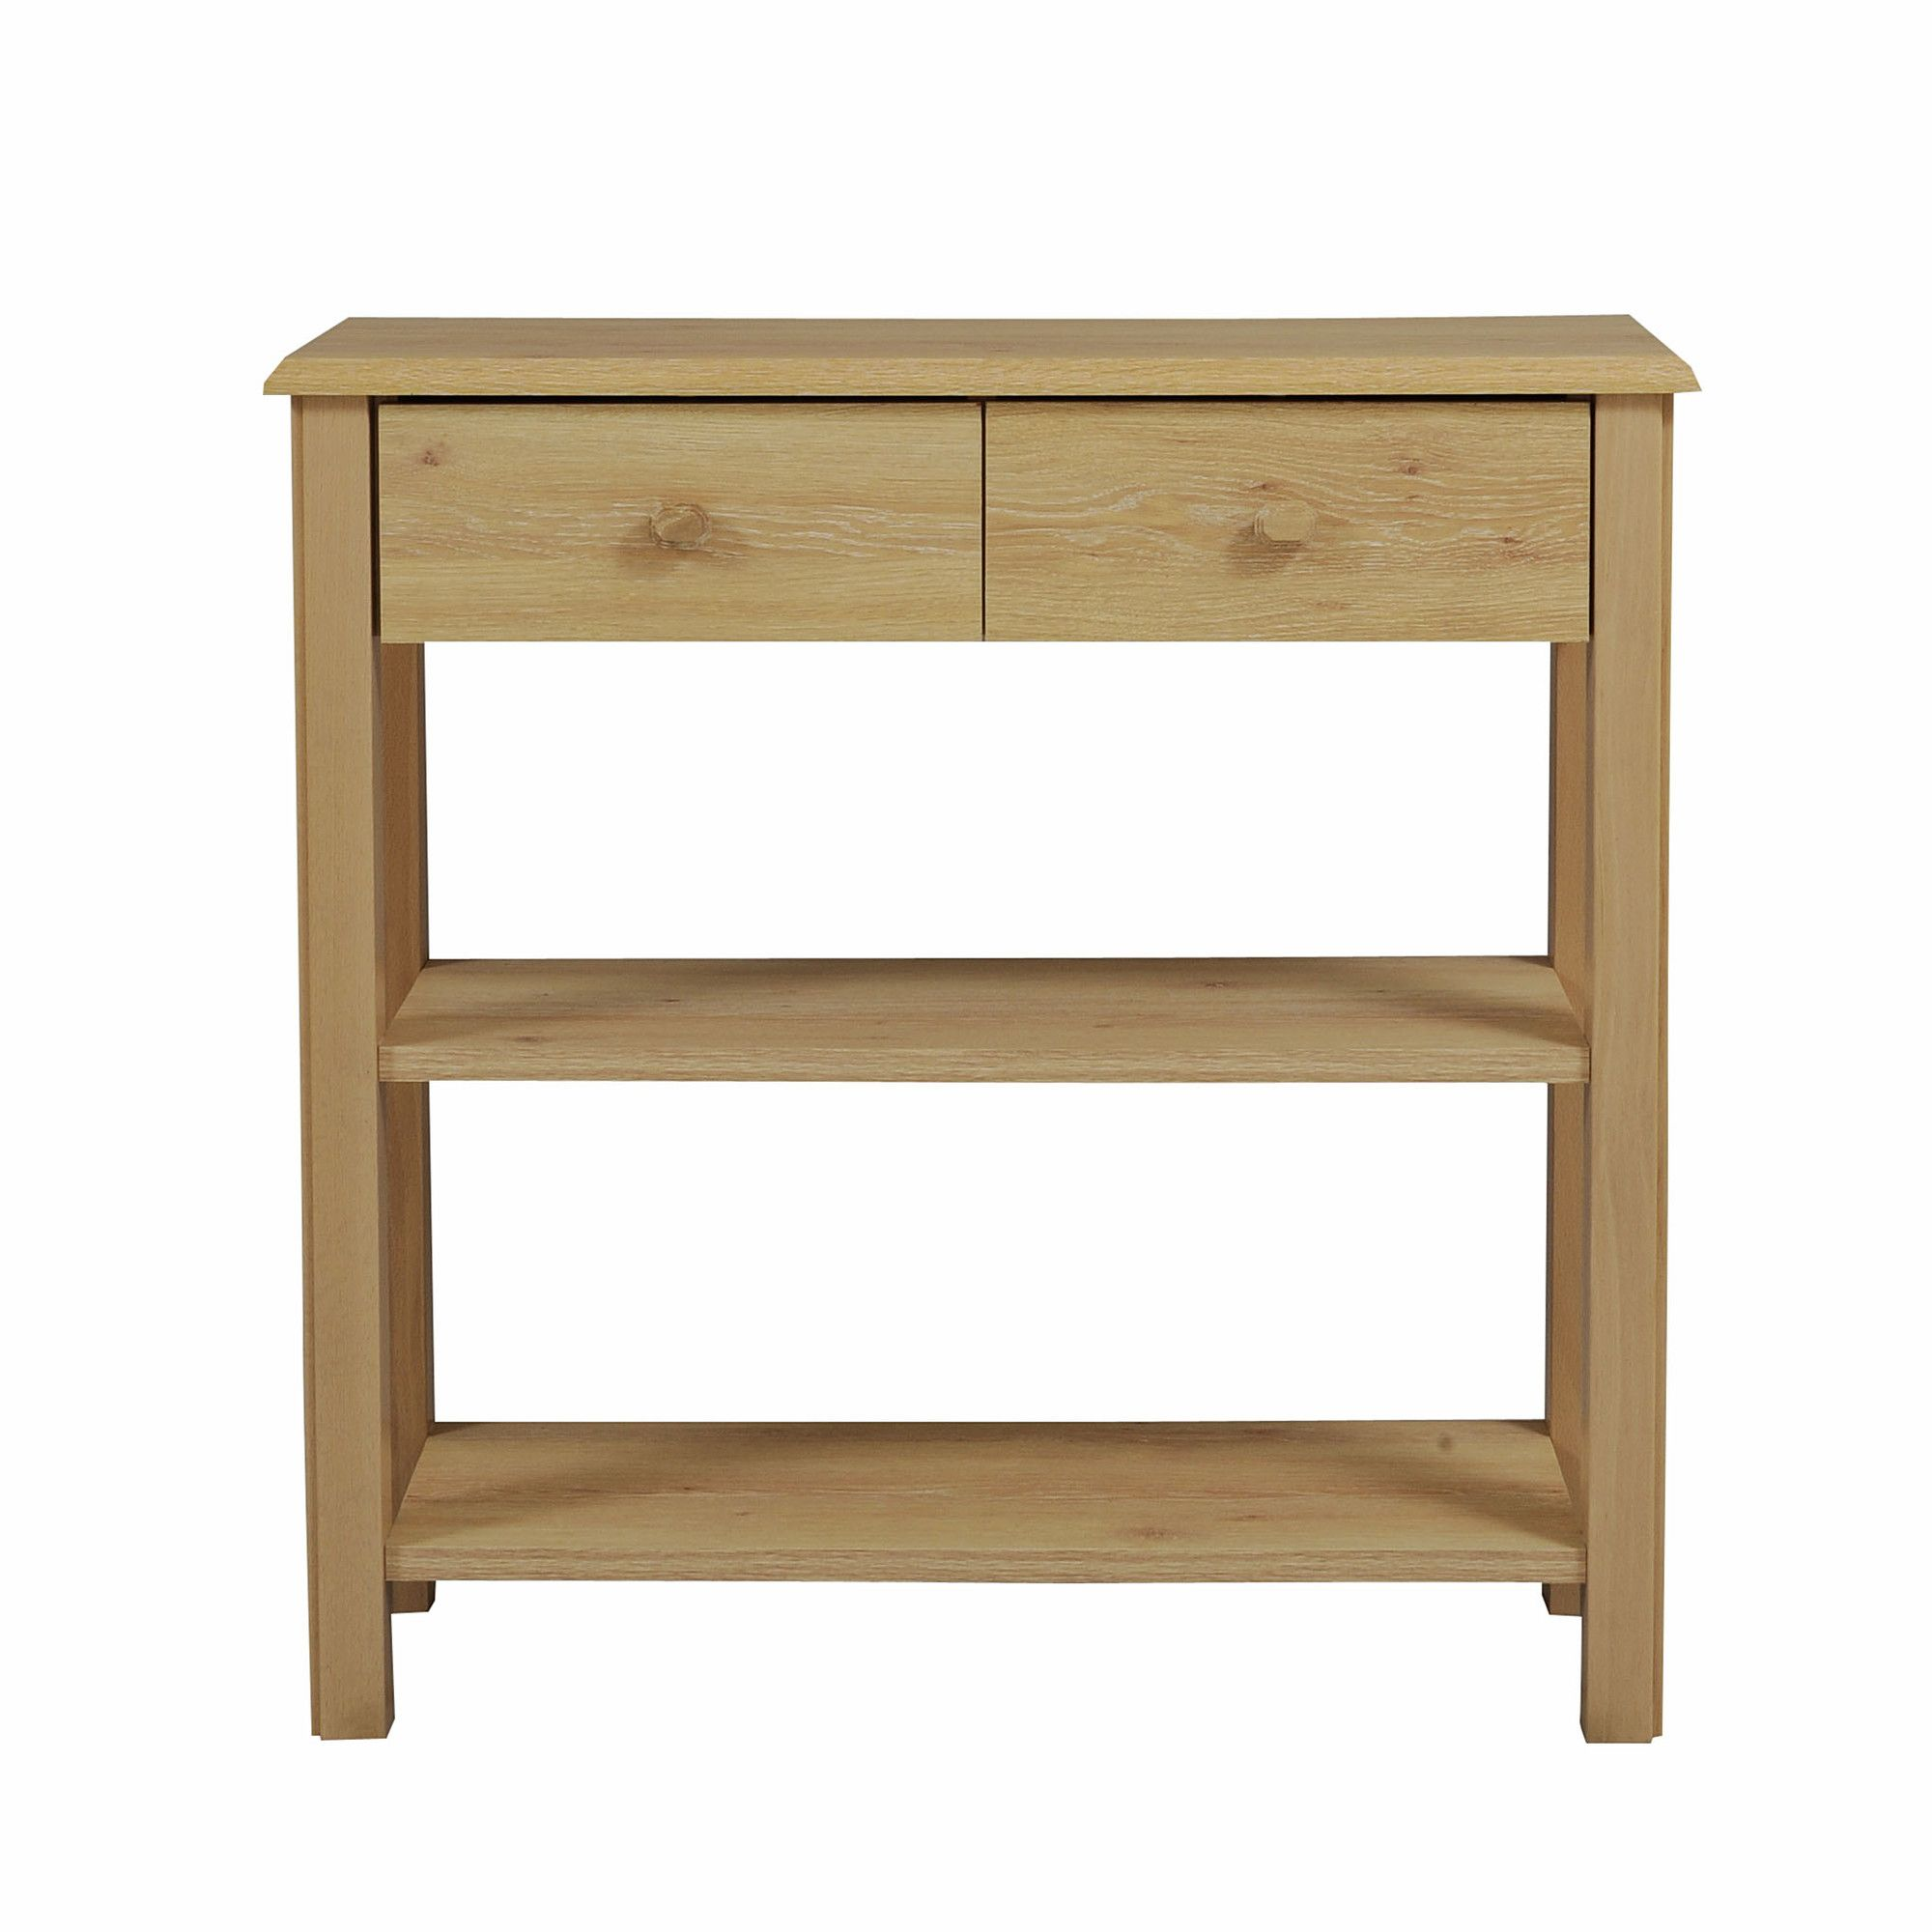 Caxton Driftwood Console Table in Limed Oak at Tesco Direct